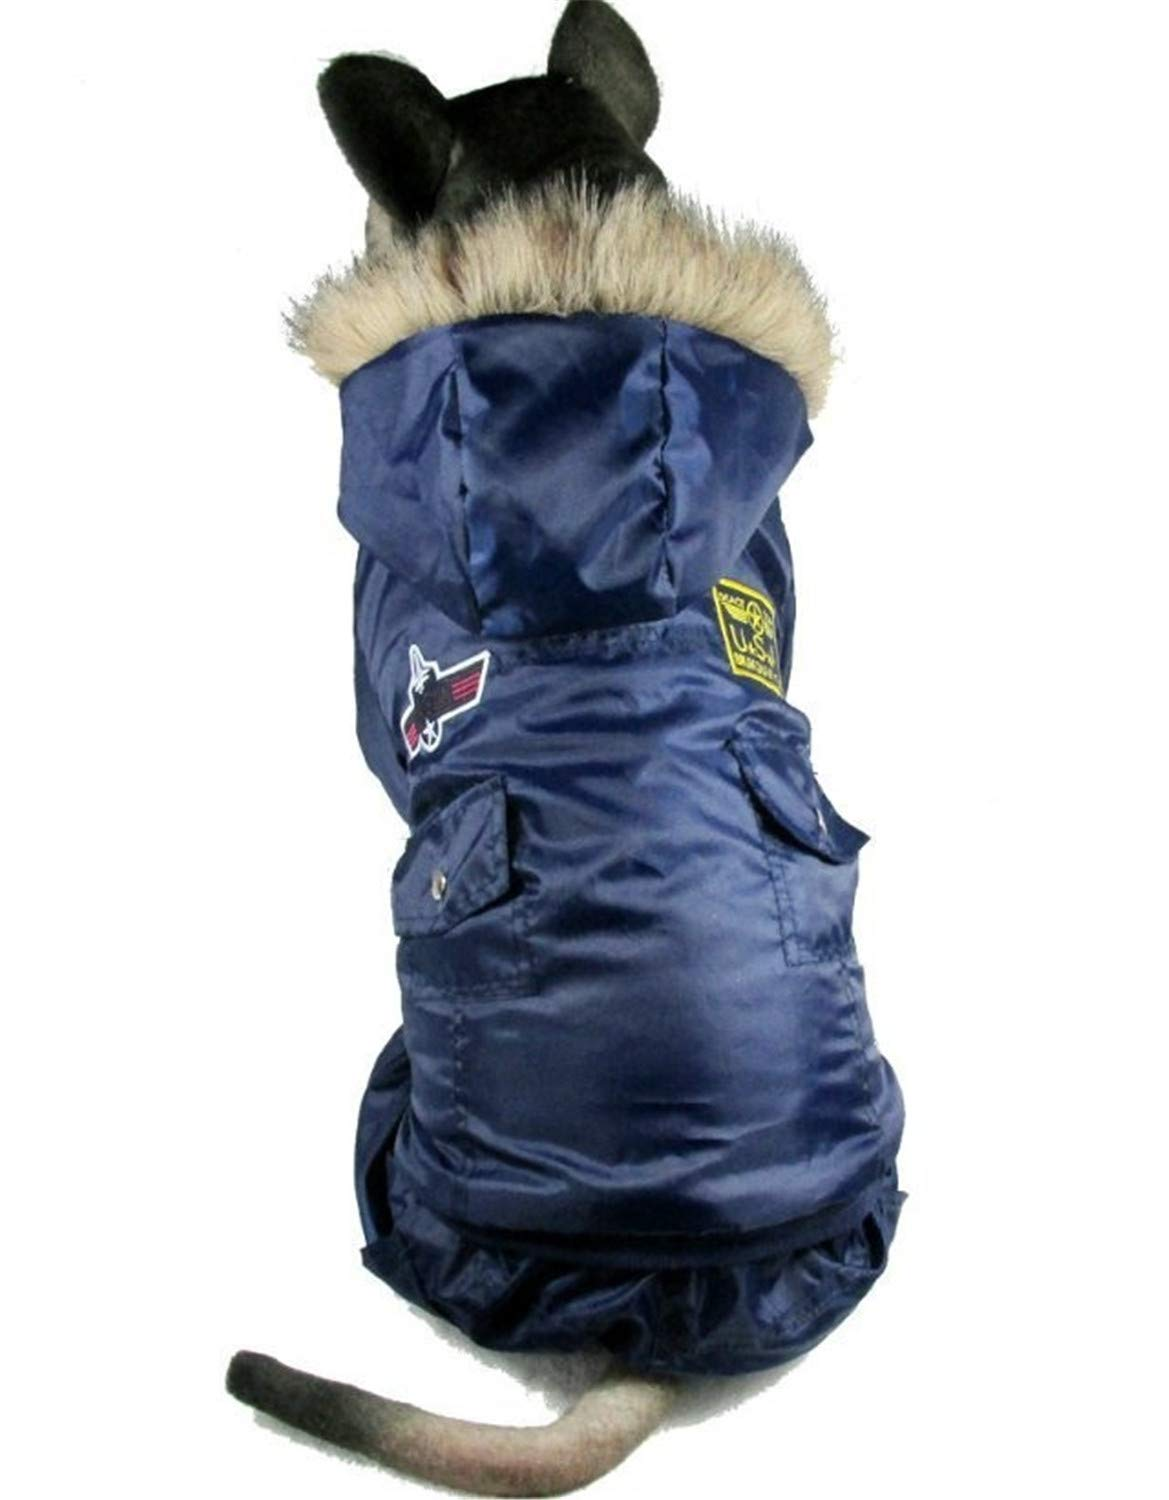 bluee 5XL bluee 5XL Winter Warm Thick for Large Pet Padded Hoodie Jumpsuit Pants Apparel bluee 5XL